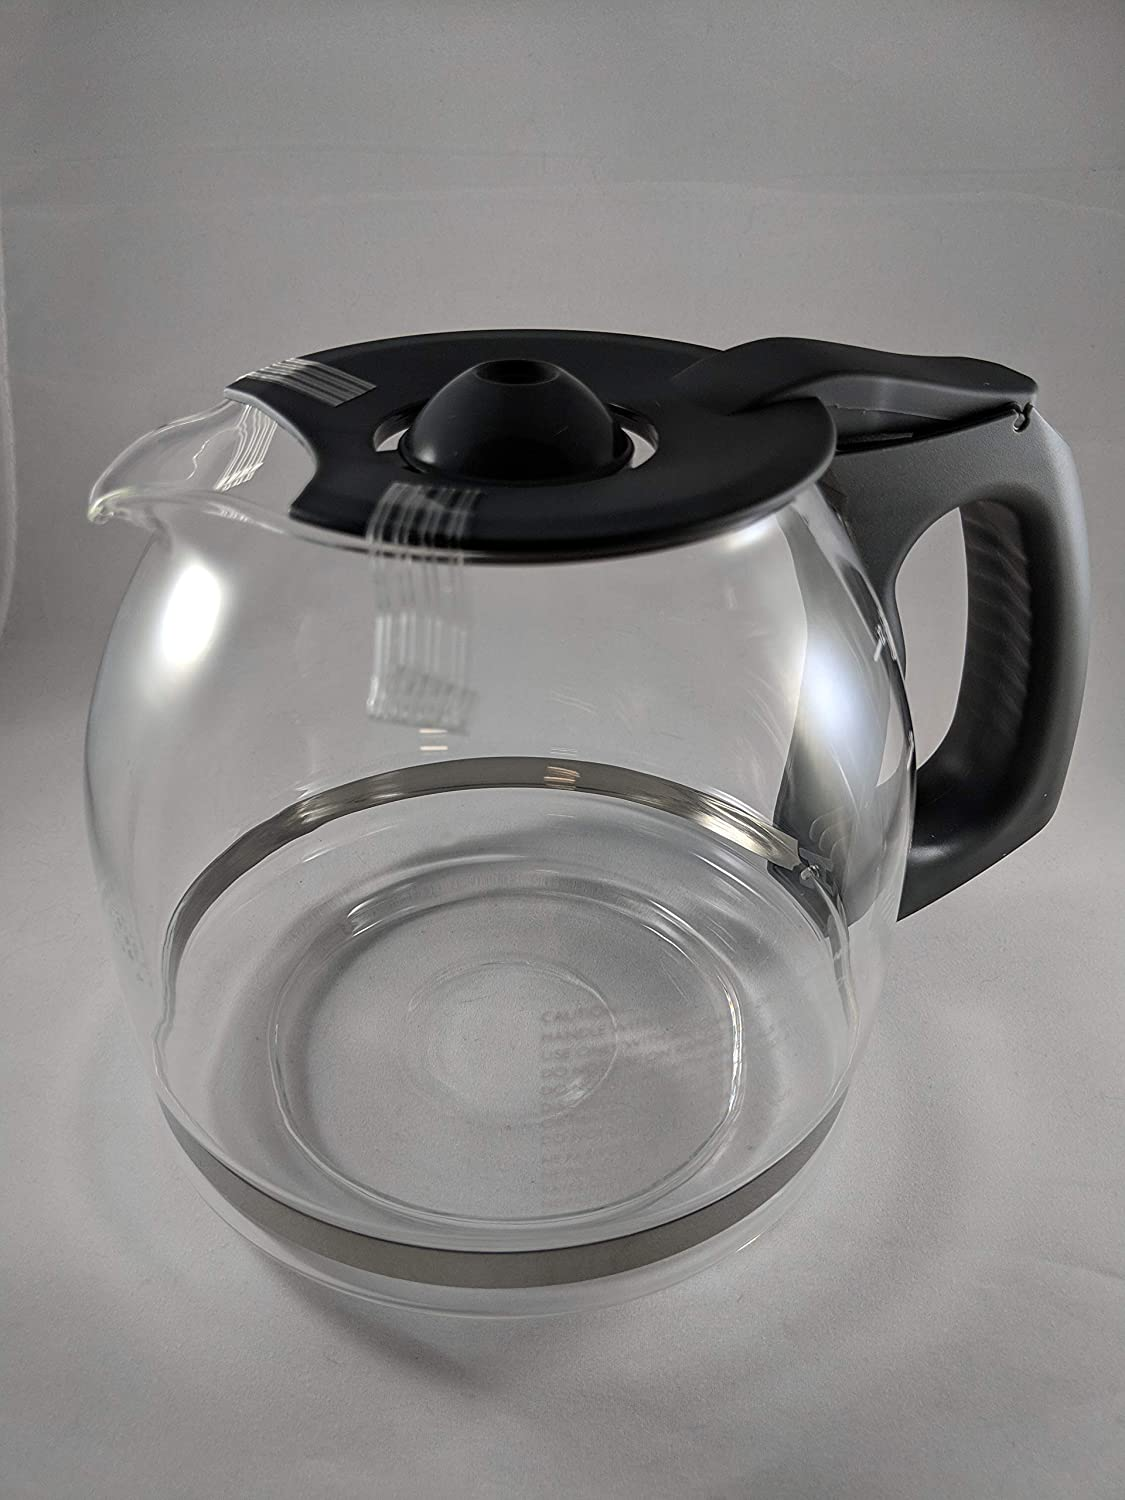 Compatible with Kenmore 88915 12 cup Coffee Maker Carafe (OEM) (Black Color Handle & Lid)